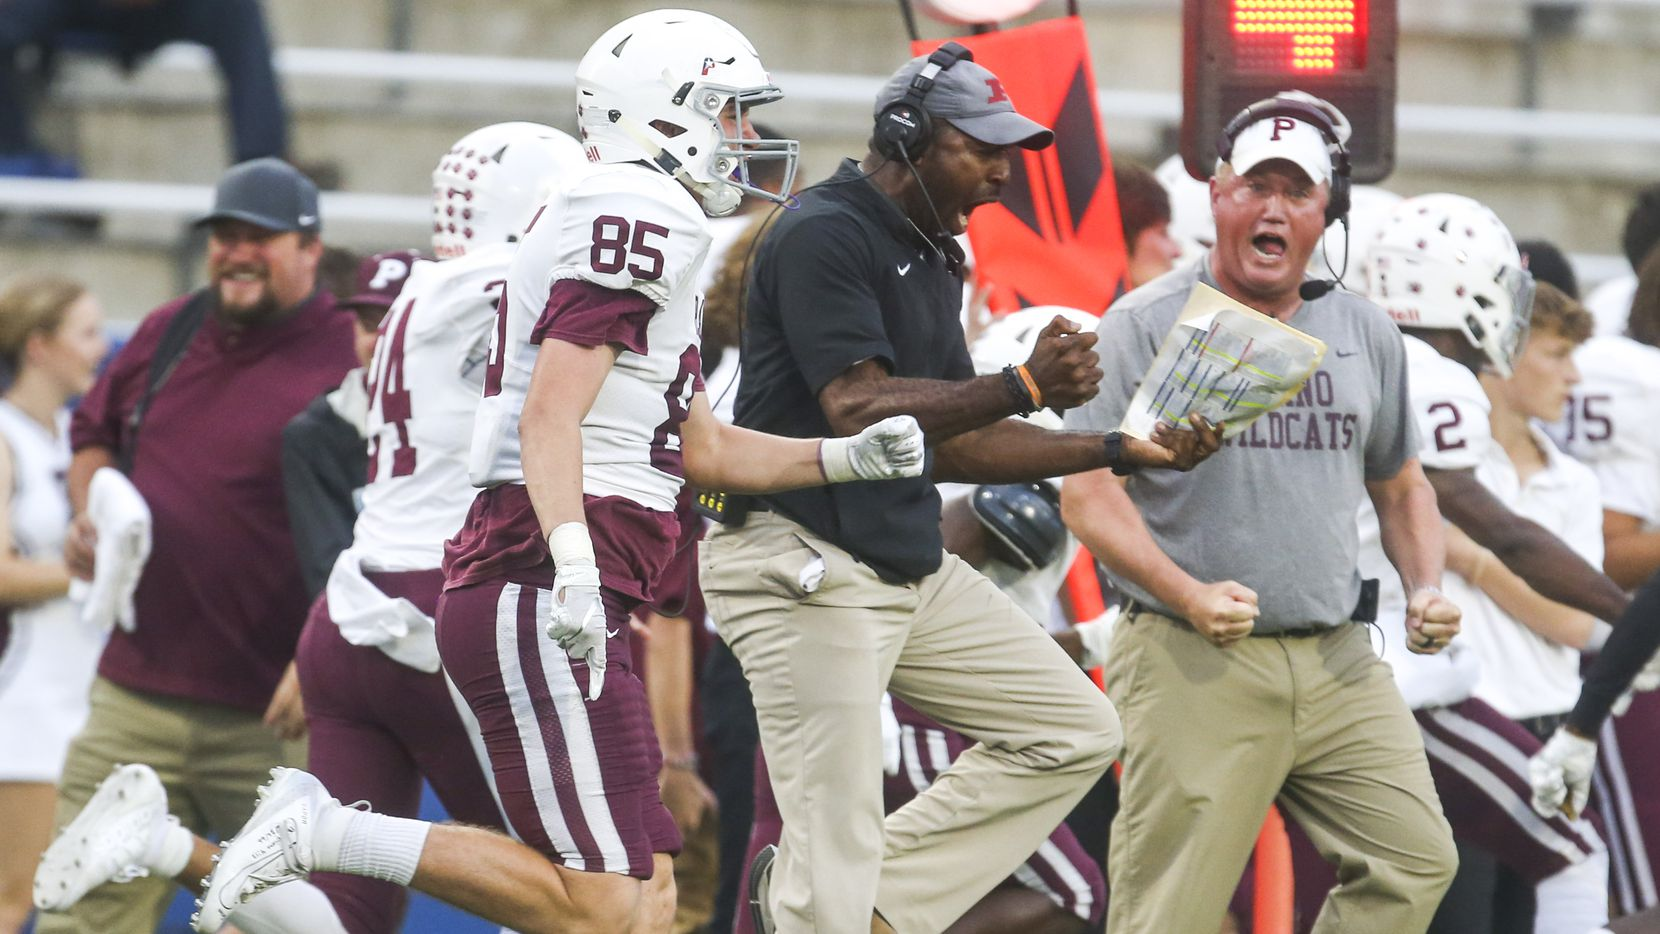 The Plano team celebrates an Isaiah Calhoun touchdown during the first half of a high school football game between McKinney and Plano on Thursday, October 10, 2019 at McKinney ISD Stadium in McKinney, Texas.